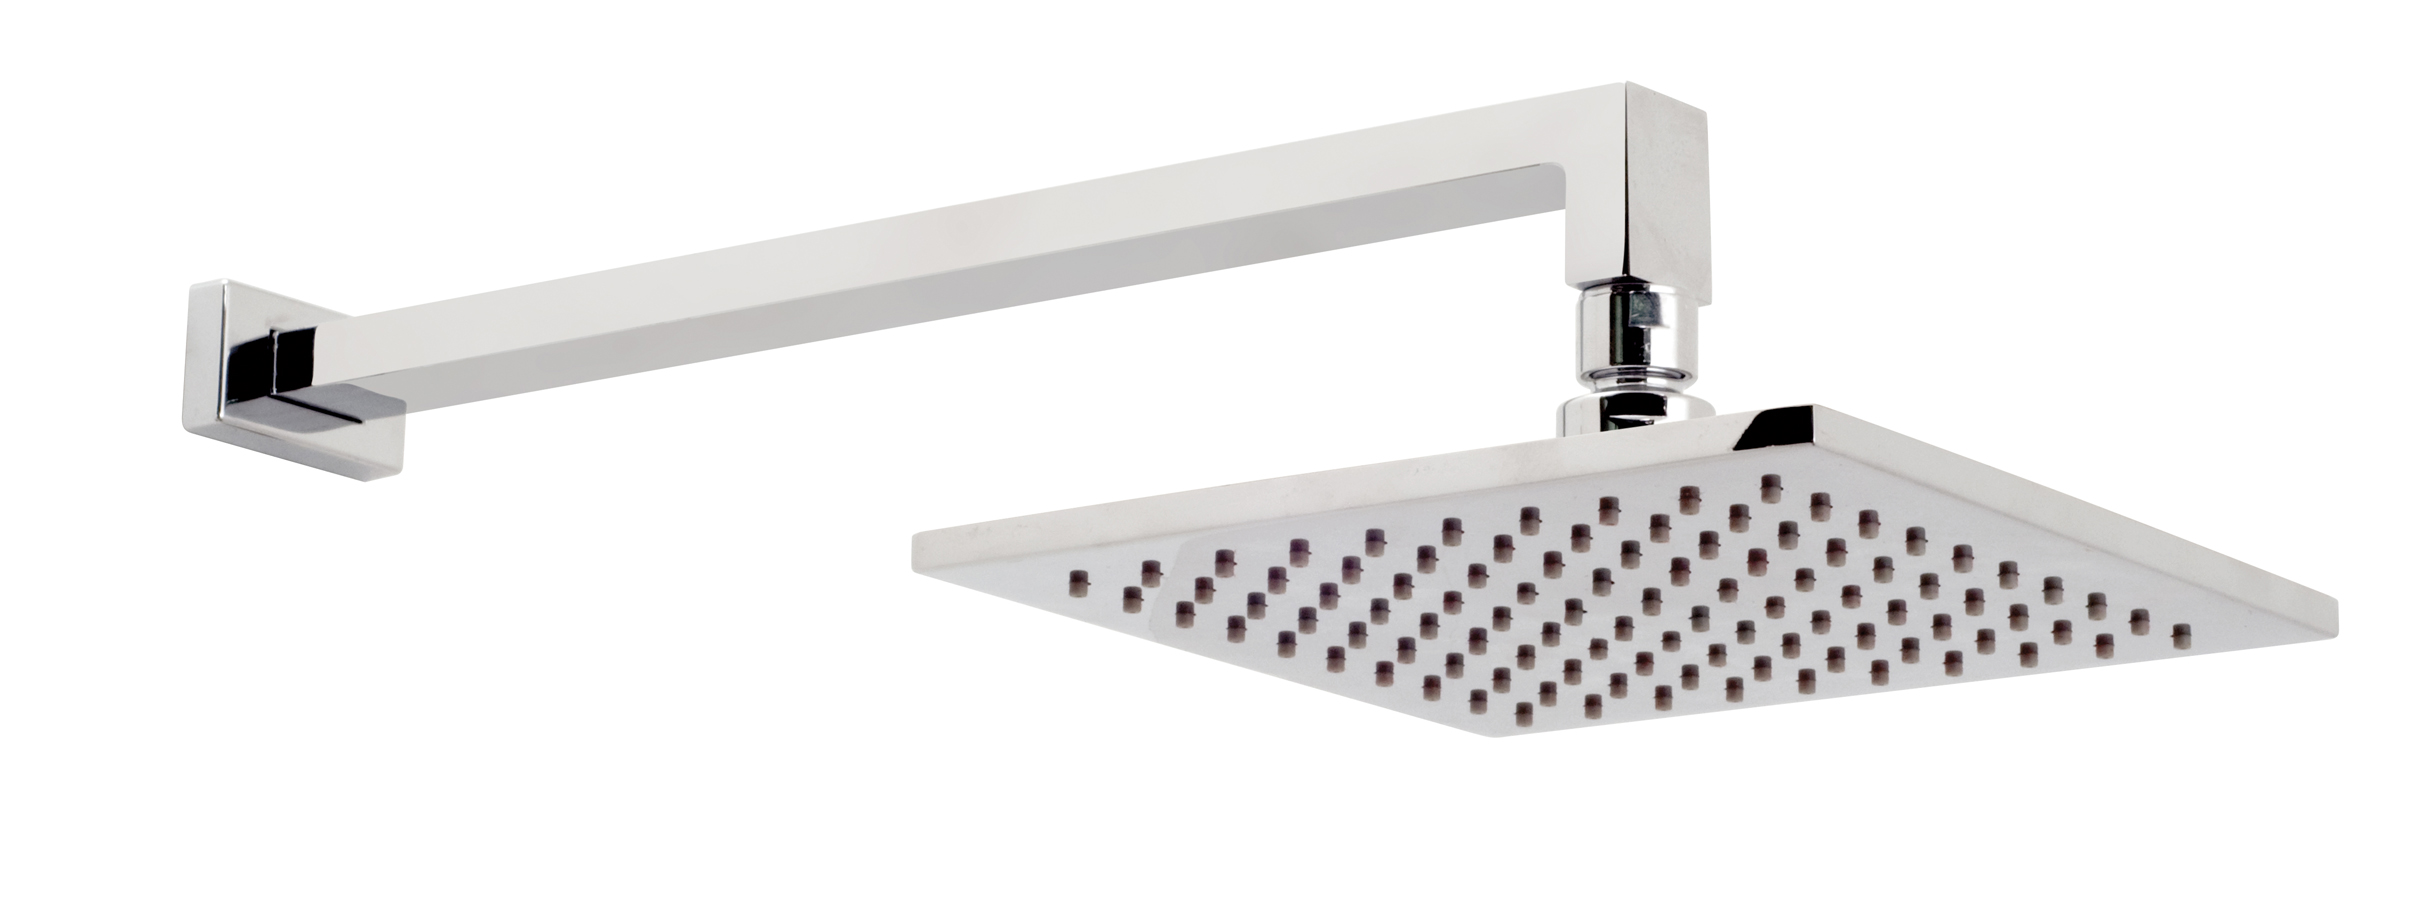 vado atmosphere air injection square shower head with arm